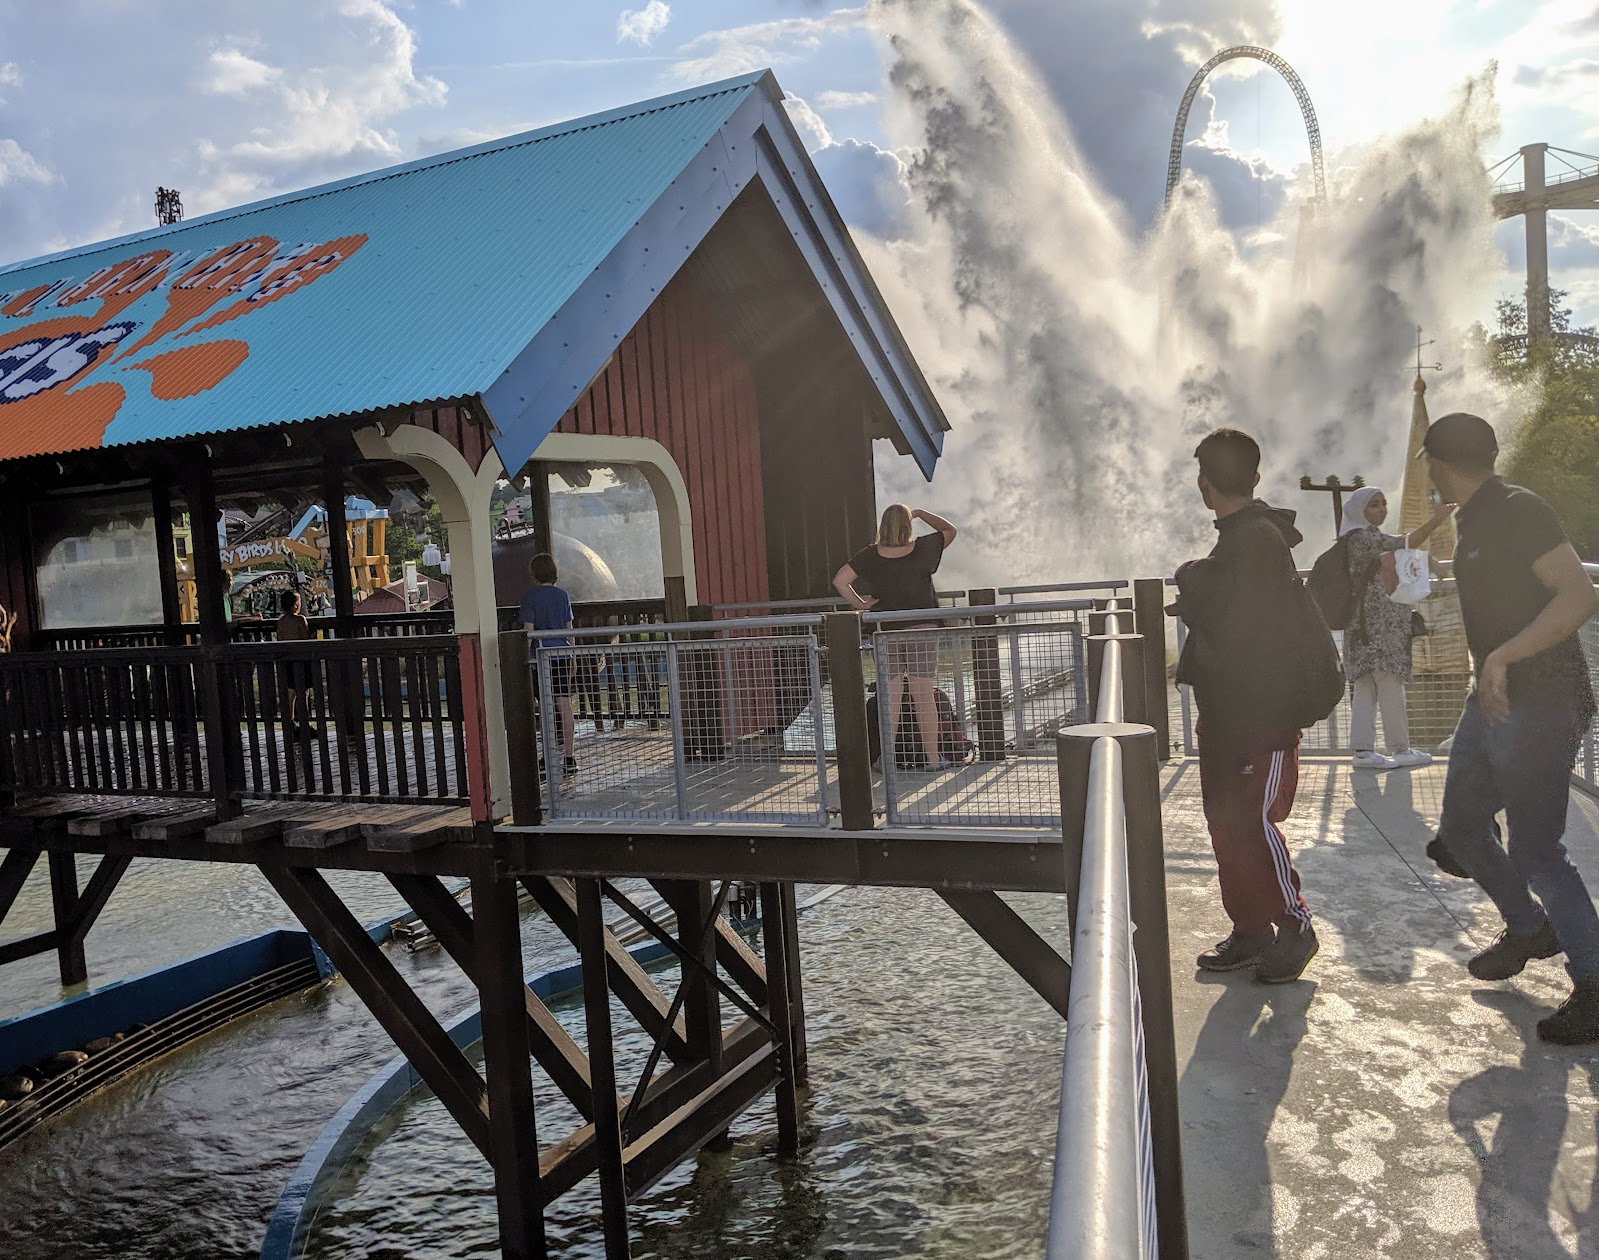 Exploring the Southern Merlin Theme Parks with Tweens  - Water splash on Tidal Wave at Thorpe Park